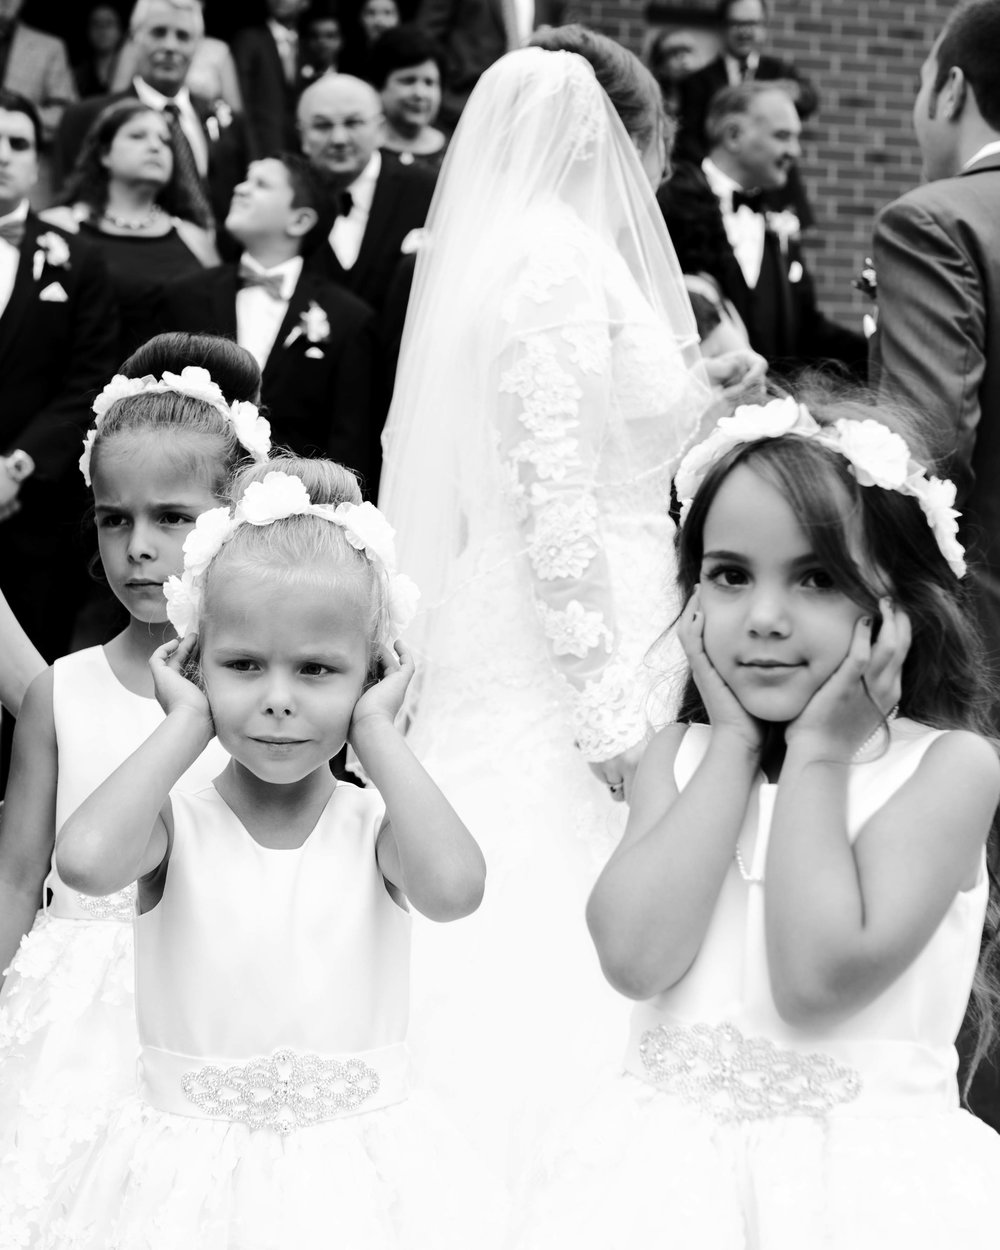 the flower girls cover their ears in response to the deafening sound of church bells. Ottawa.